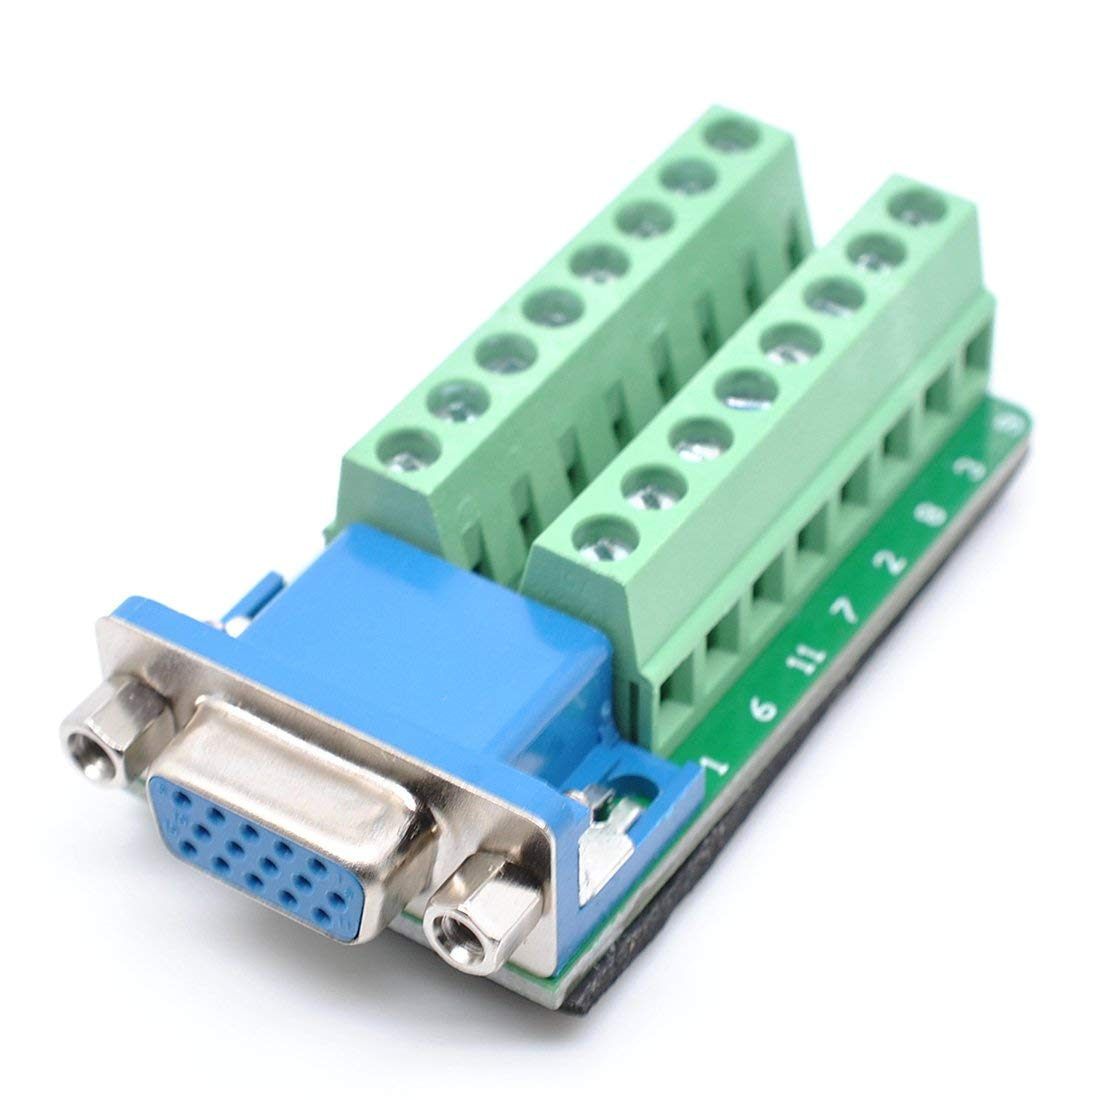 DB15 D-SUB Female with Nut VGA3+9 15 Pins Port to 2 Row Terminal Breakout Board